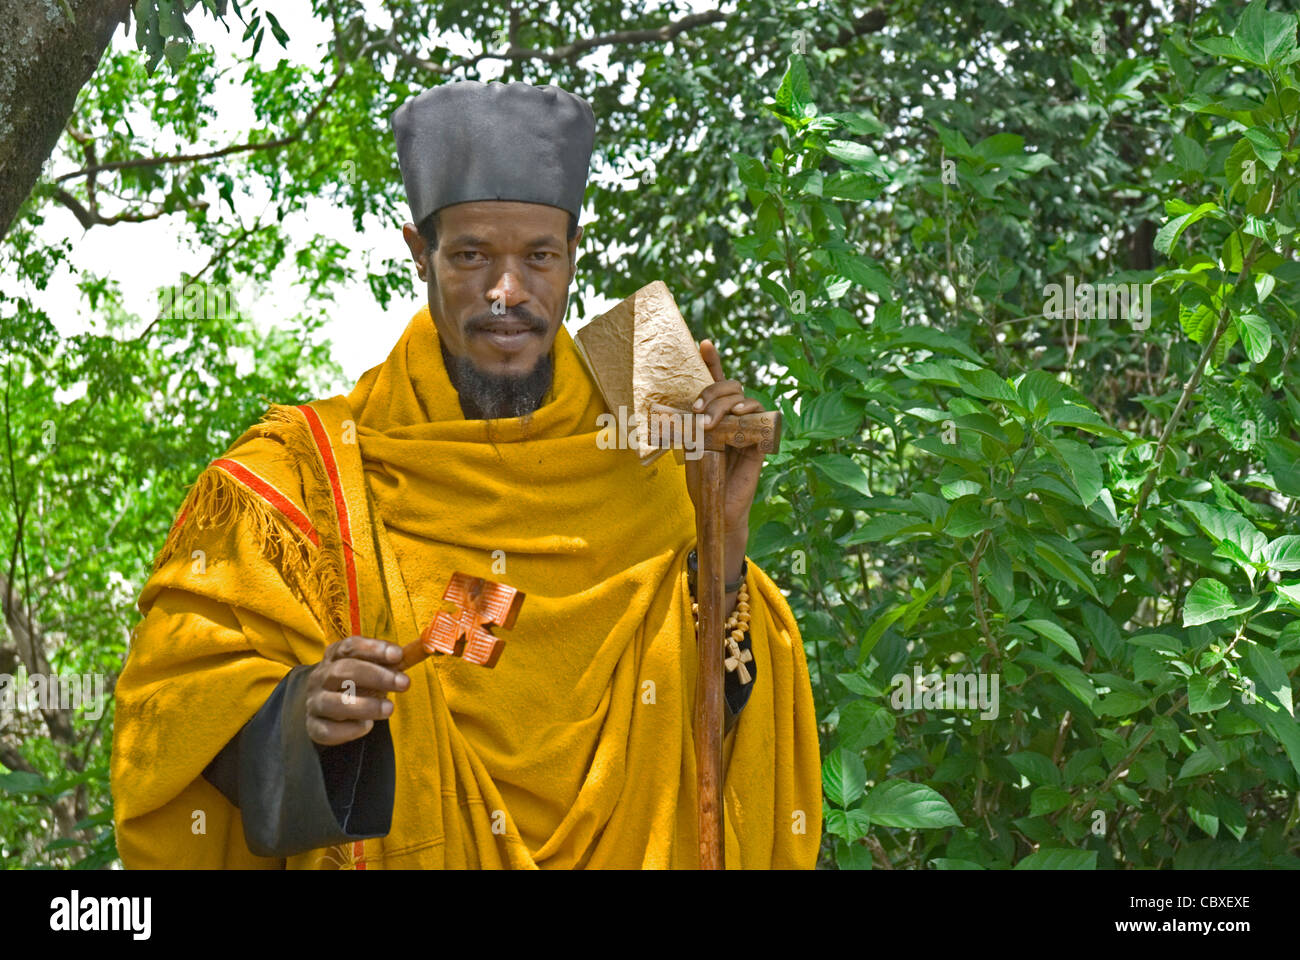 Priest of the Ethiopian Orthodox Tewahedo Church - Stock Image